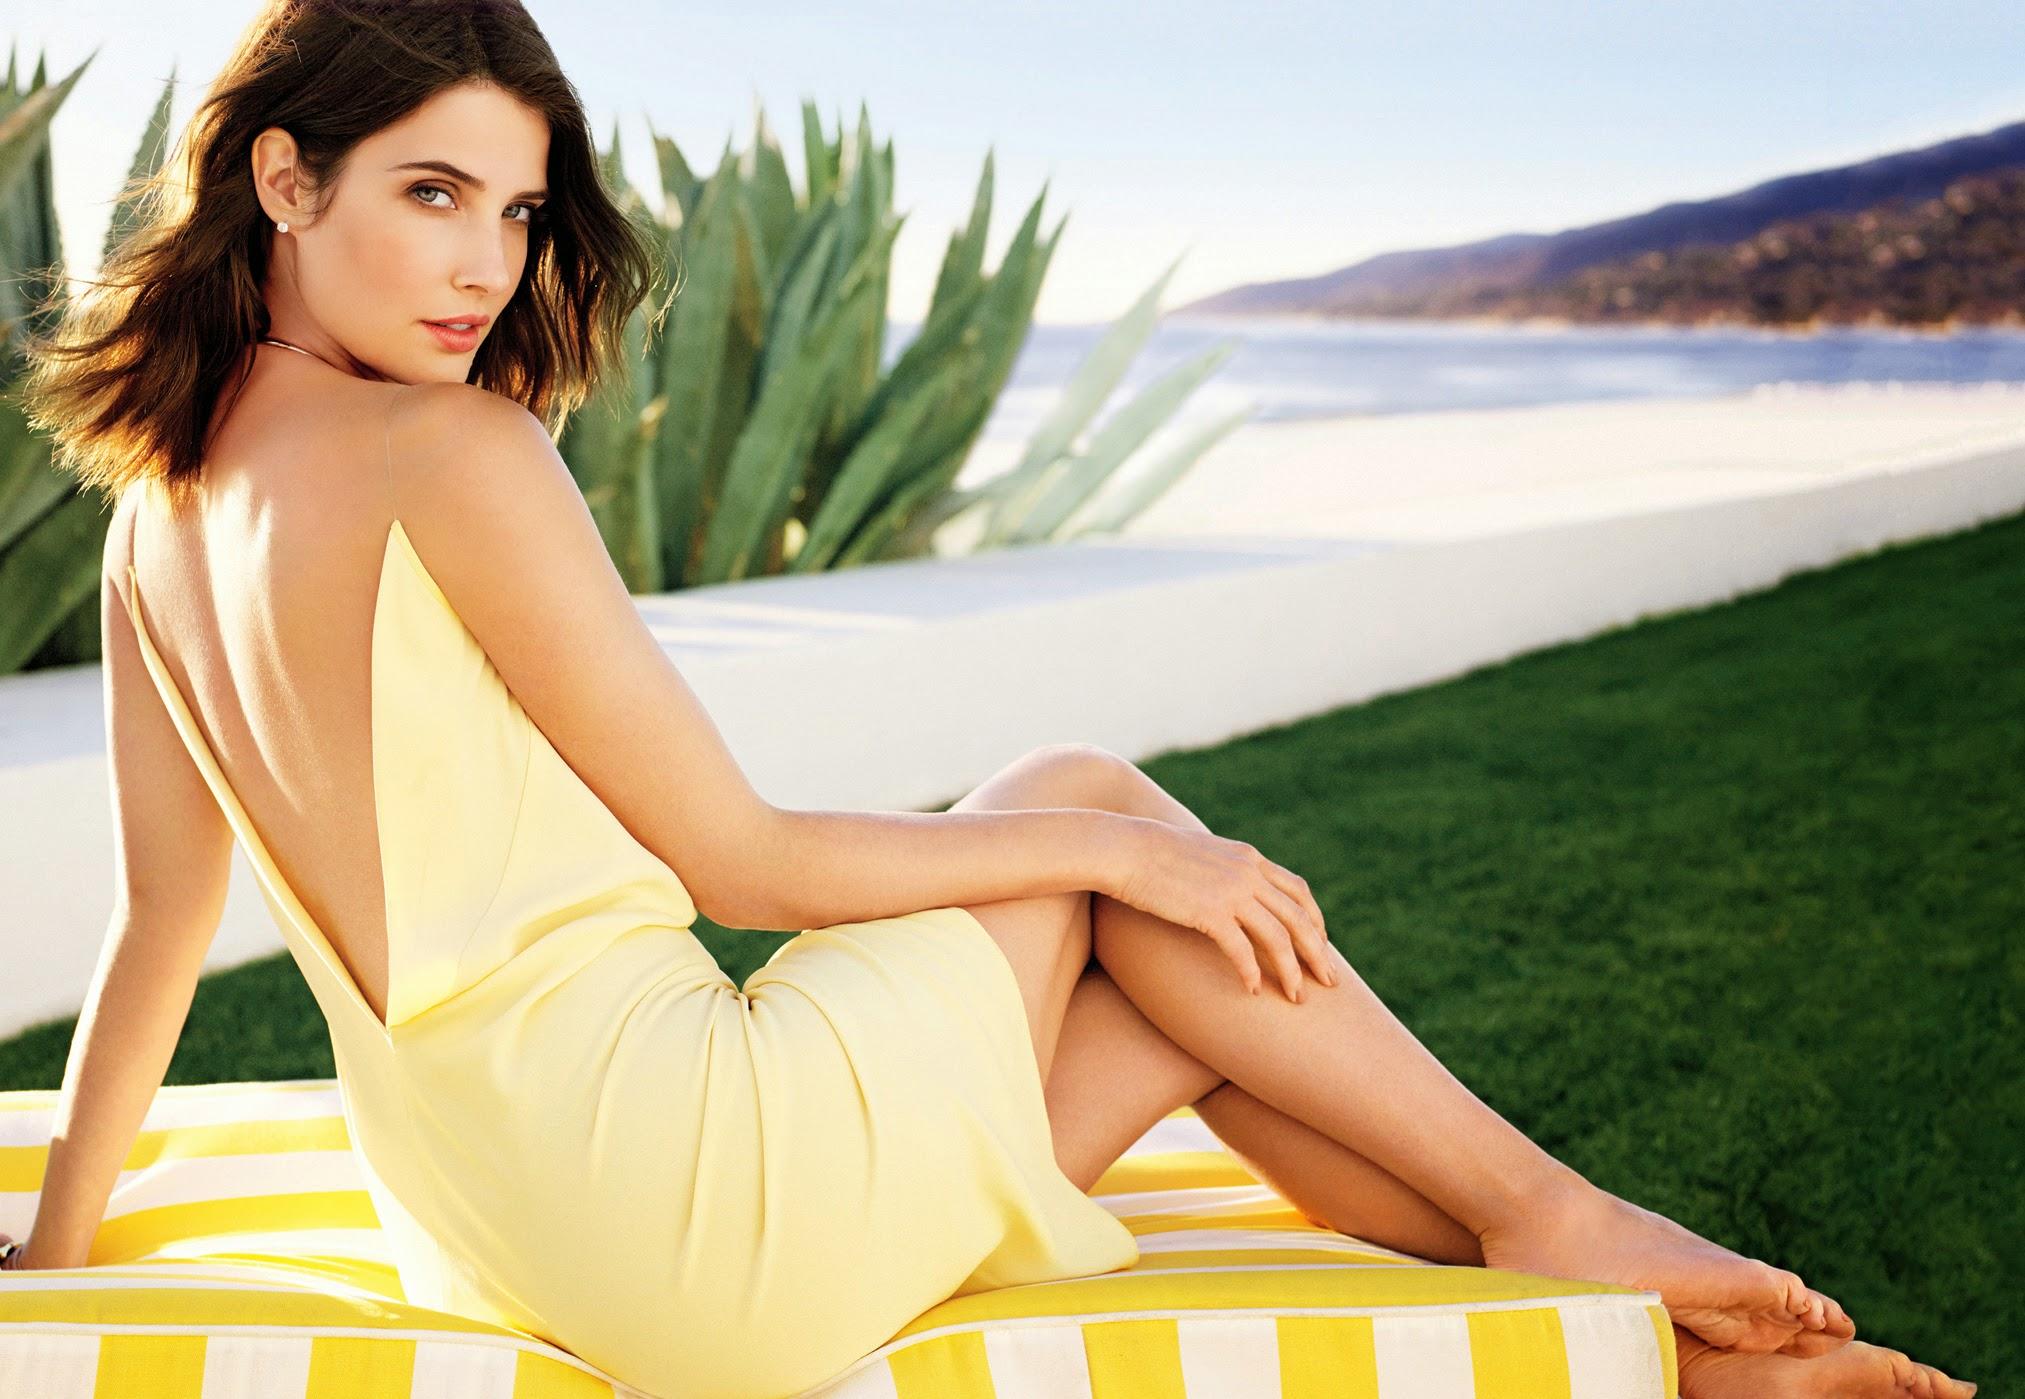 Facebook Covers For Cobie Smulders • PoPoPics.com